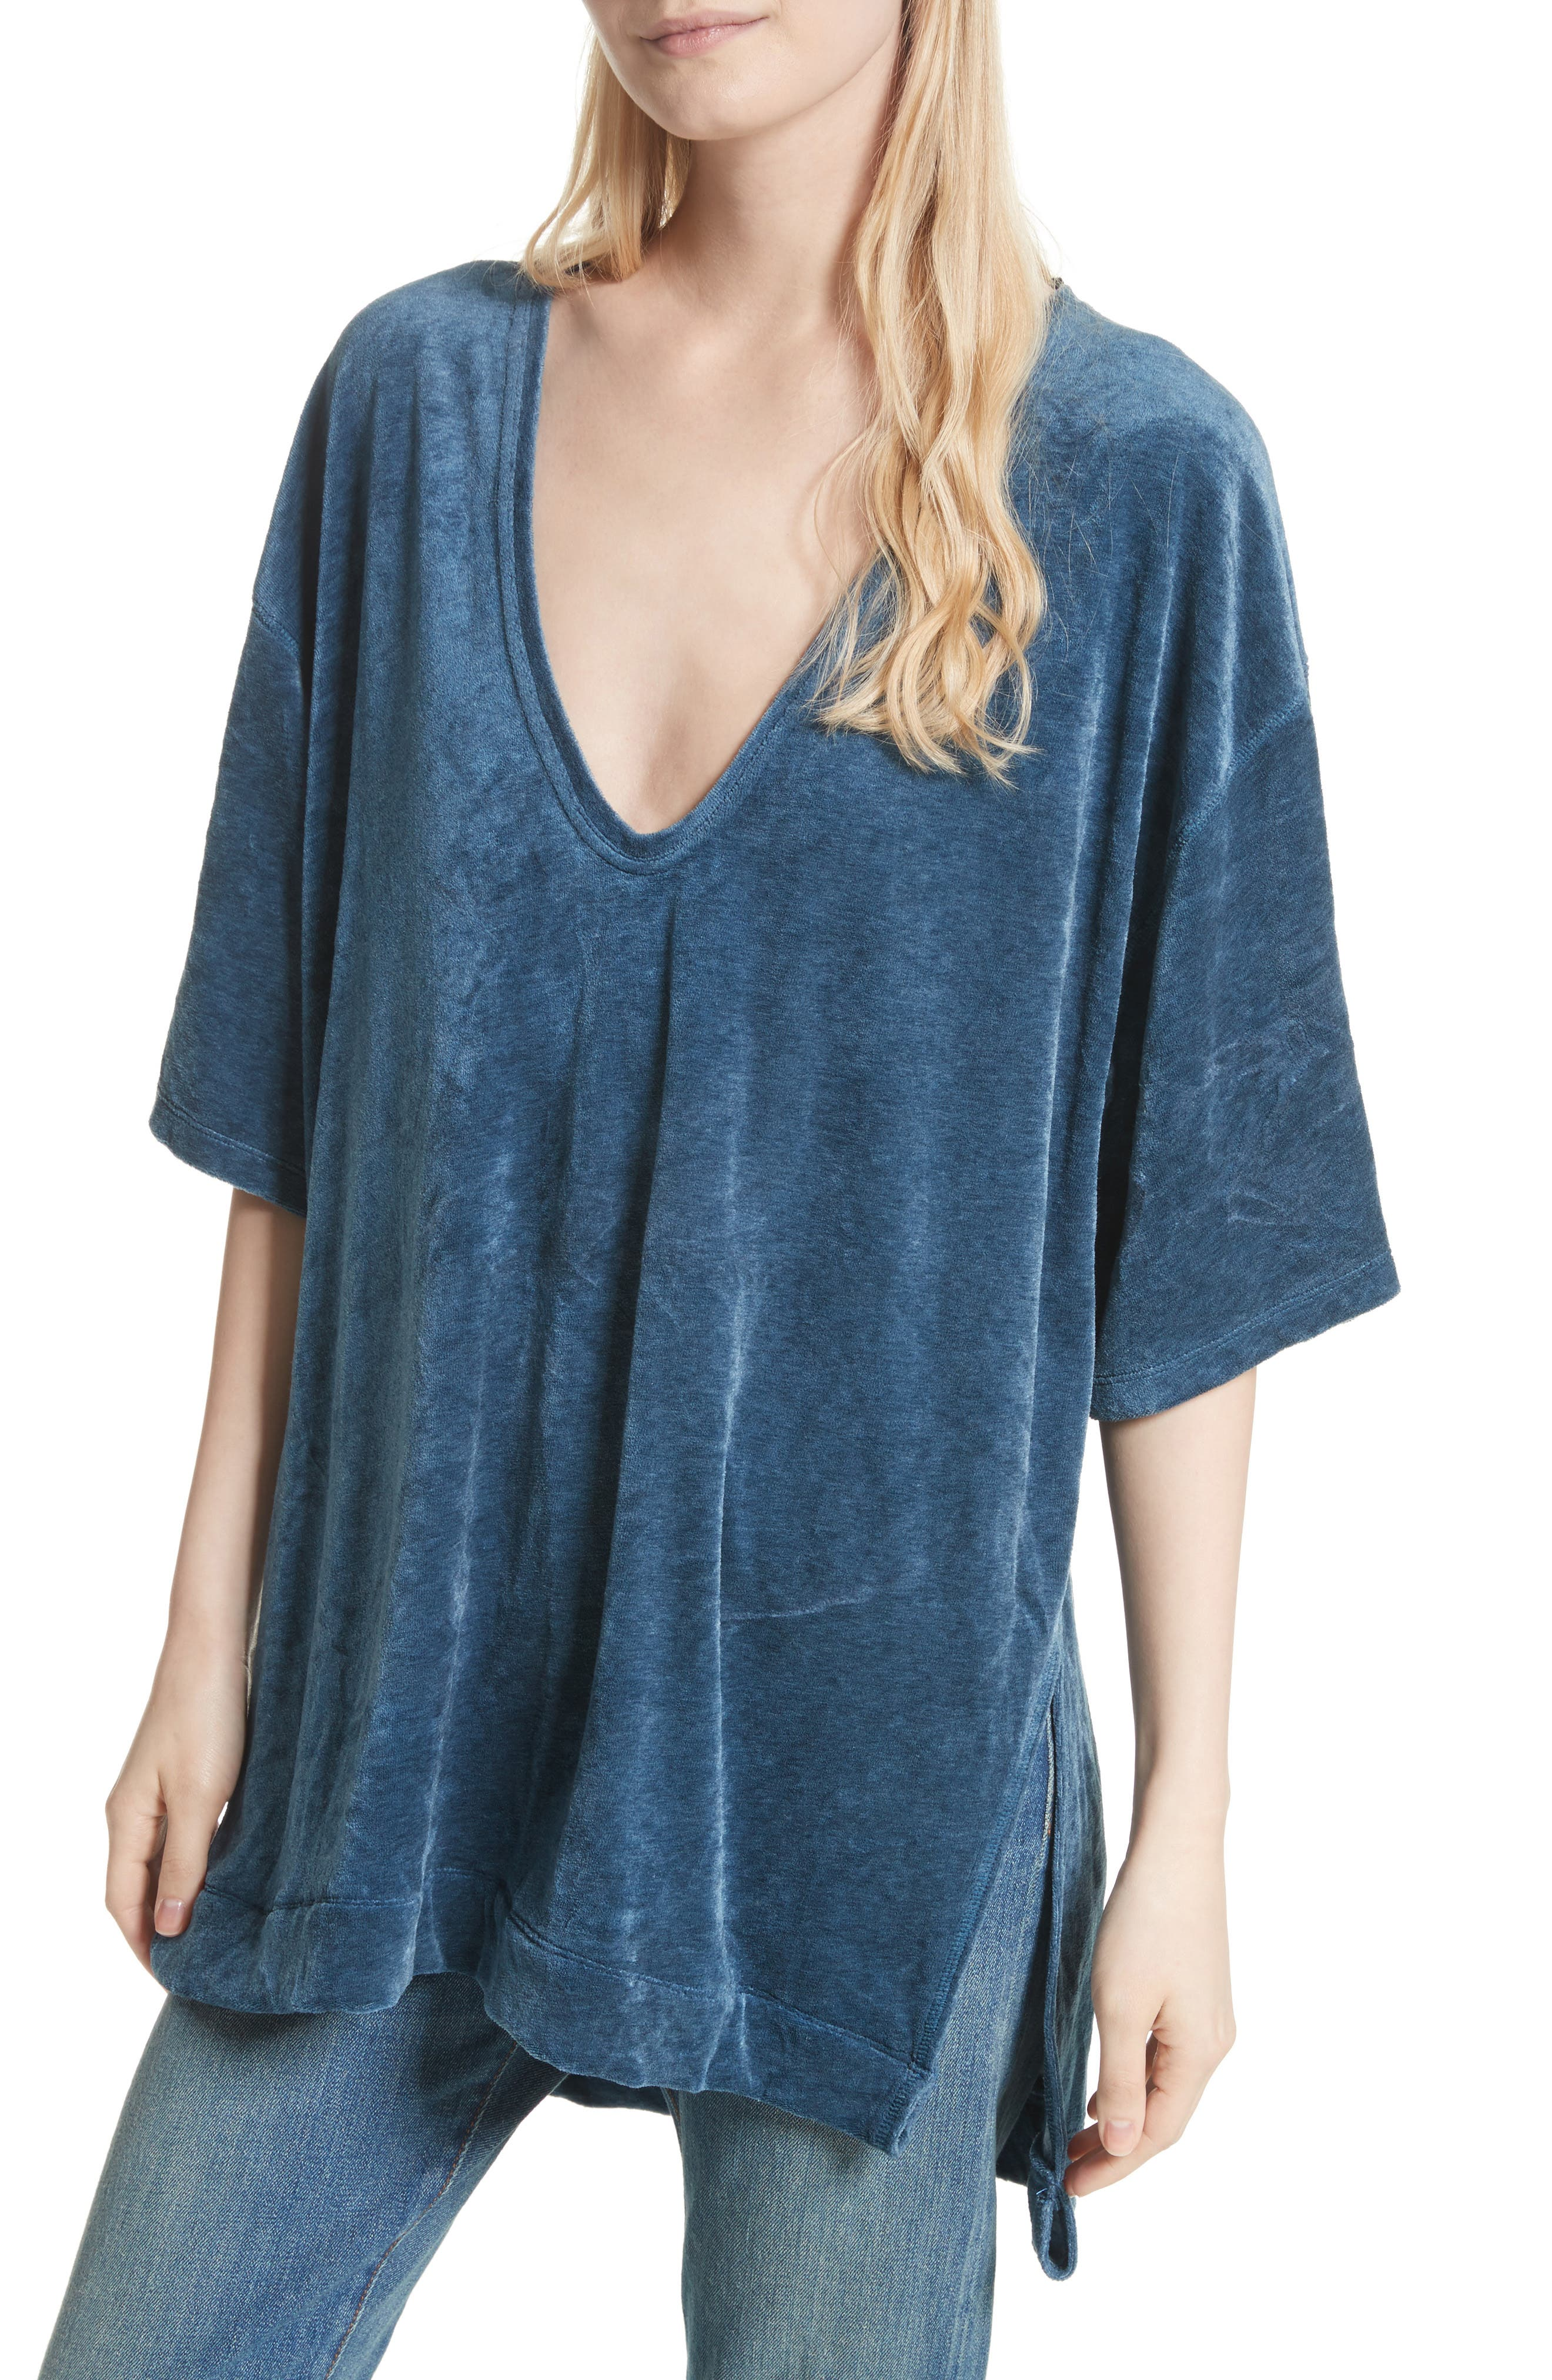 Free People The Luxe Tee